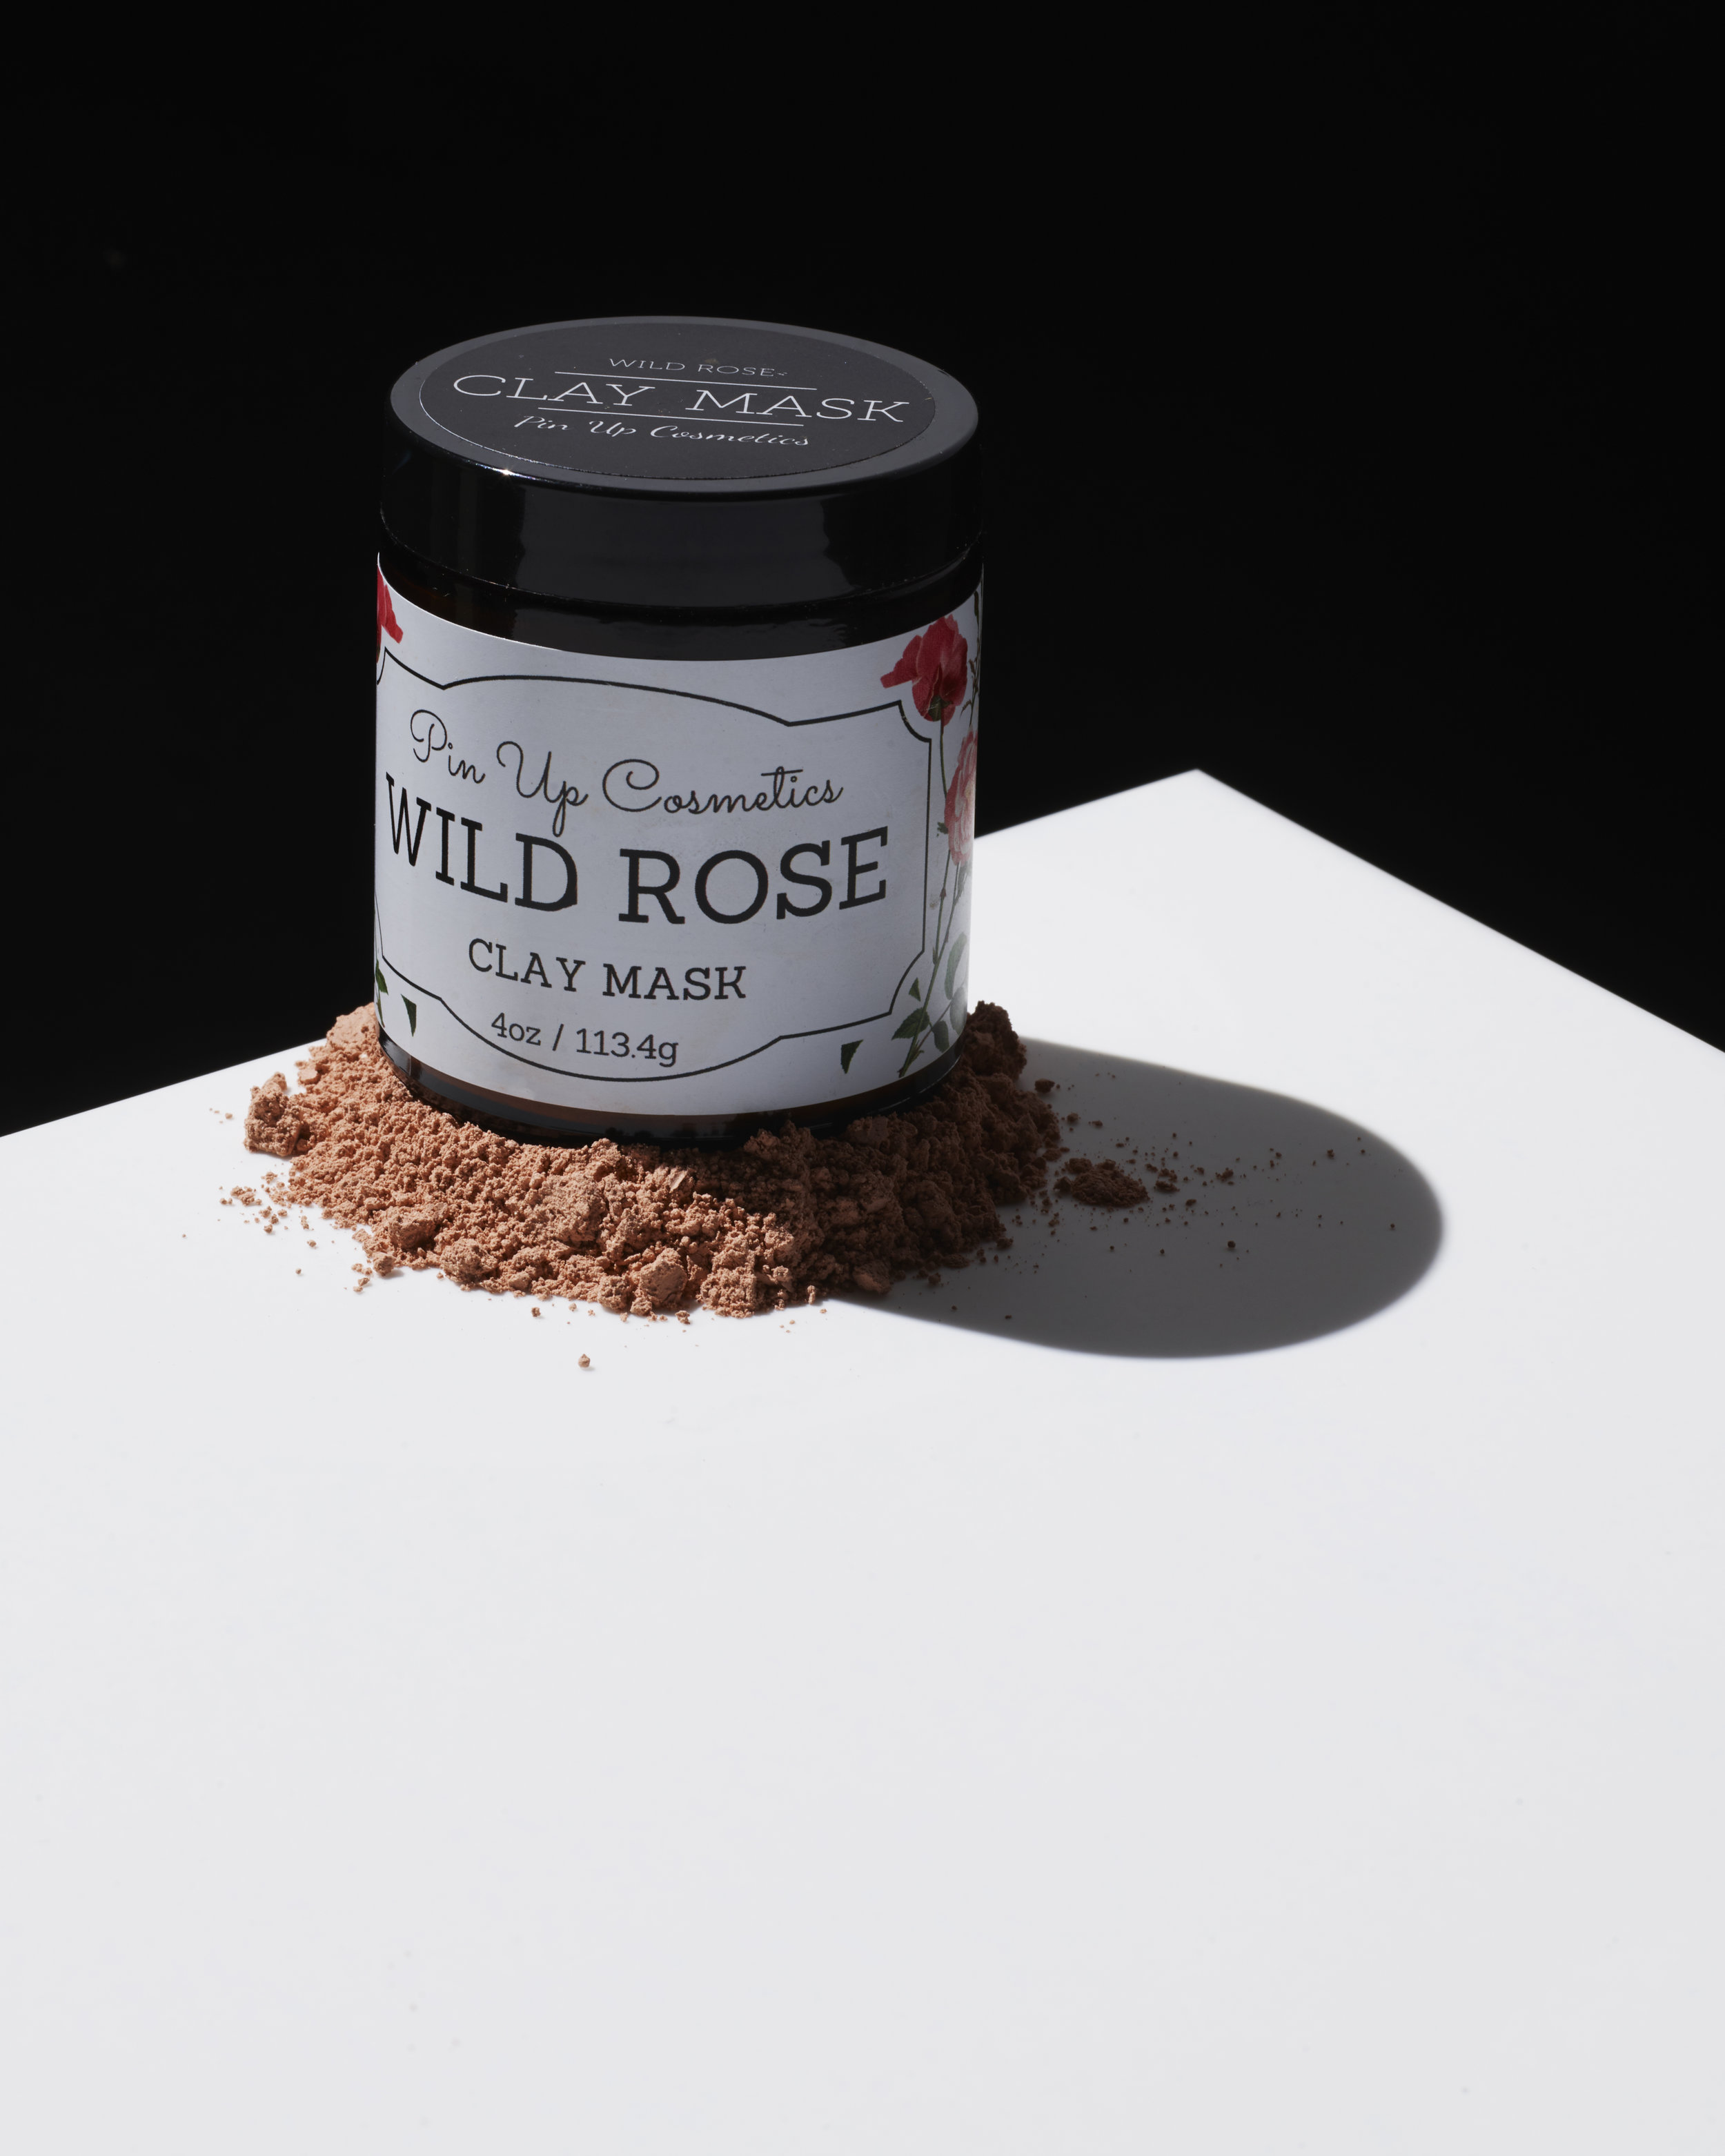 """Pin-Up CosmeticsWild Rose Clay Mask - What started as a need to get a new face mask quickly turned into """"holy grail"""" for one editor that when asked what masks they recommend, they immediately and indefinitely recommended the Pin Up Cosmetics Wild Rose Clay Mask. Plus with its easy pick-up from our local Rainbow Grocery, we stock piled this powder. The mask is made up of a few key (and only) ingredients: rose essential oil, roses, rose absolute, french clay, french rose clay, lavender essential oil. That's all. We suggest using this mask mid-day to lift and tighten your skins complexion. Be wary of leaving it on too long as it will stain your skin due to the rose absolute. Trial and tested.// Pin Up Cosmetics, Wild Rose Clay Mask, $20"""